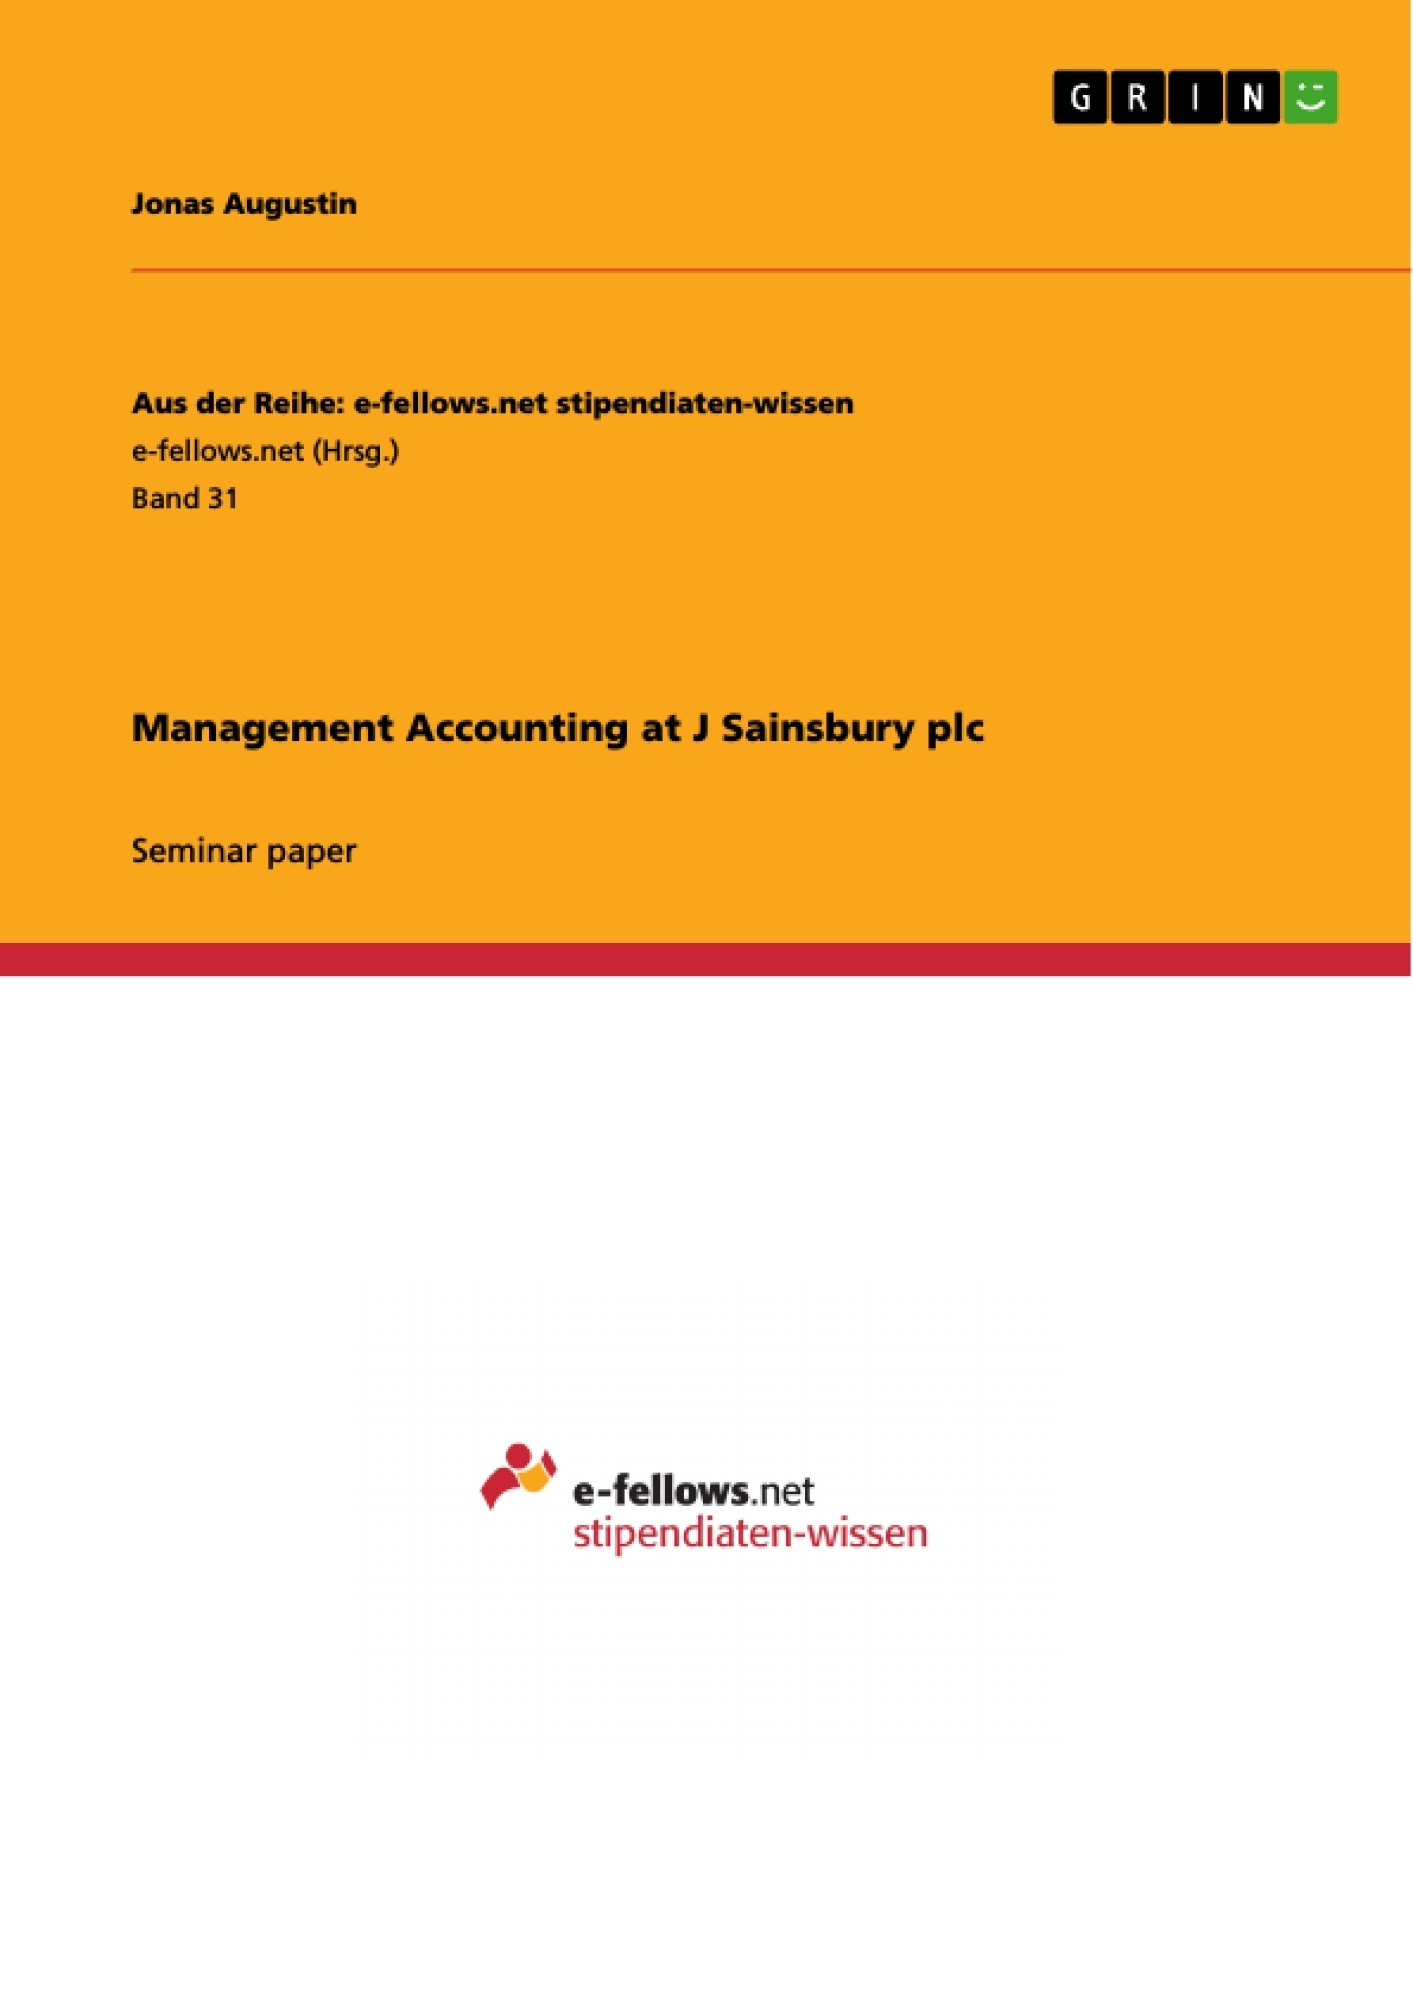 Title: Management Accounting at J Sainsbury plc